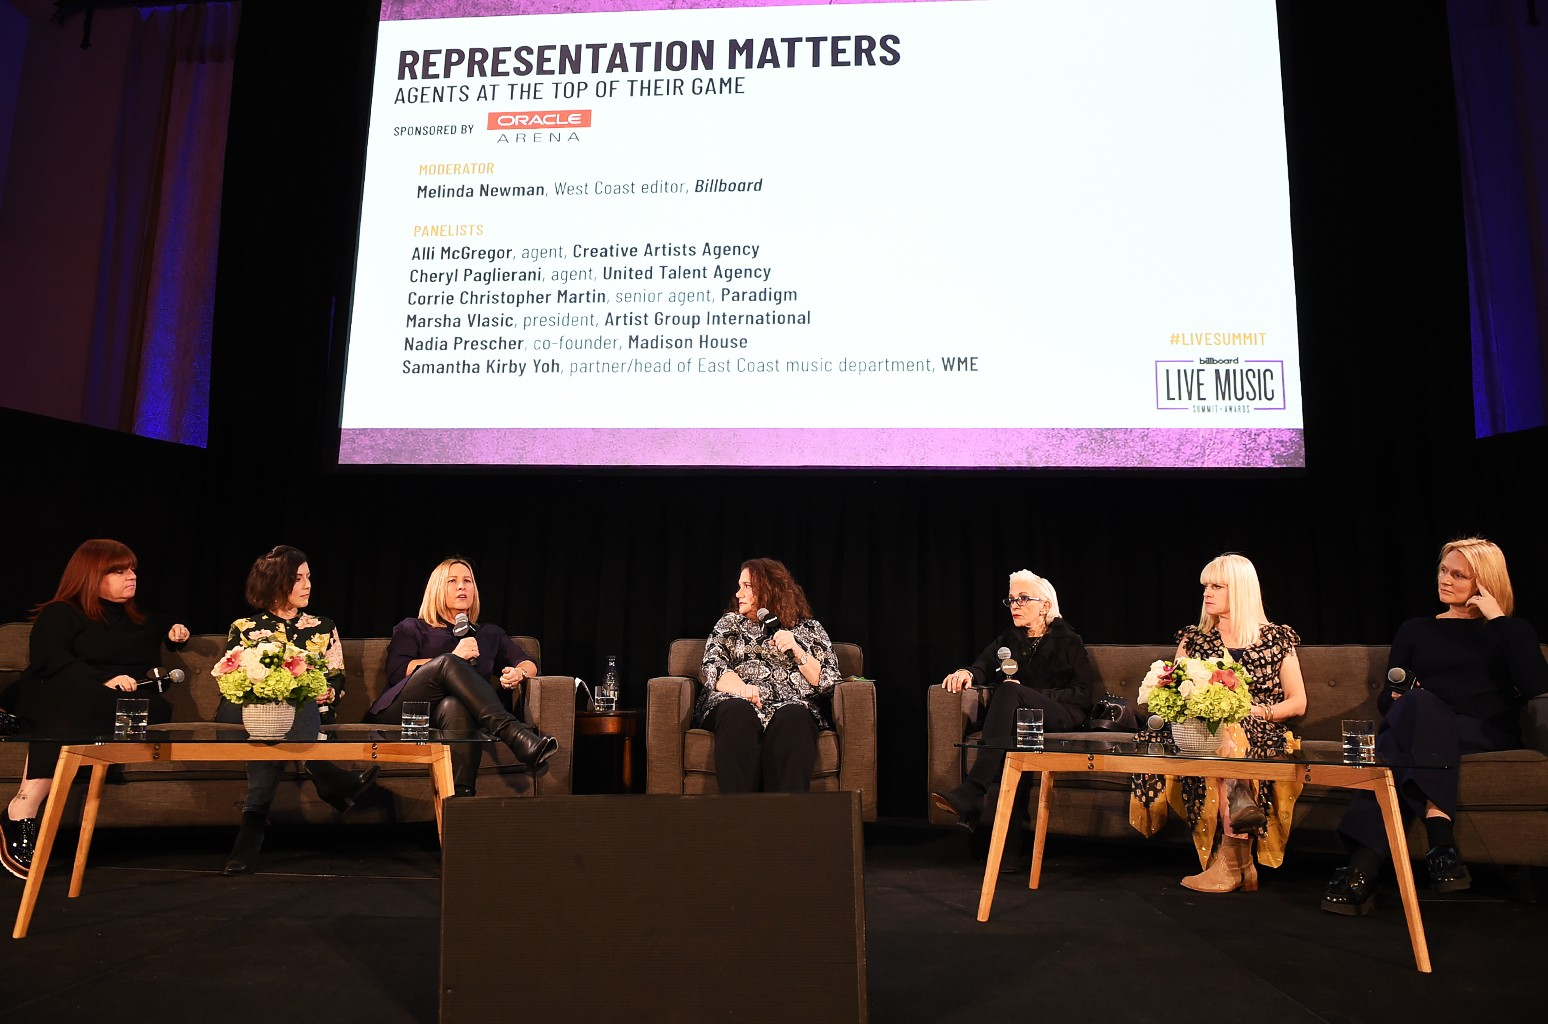 'Representation Matters: Agents at the Top of Their Game' panel